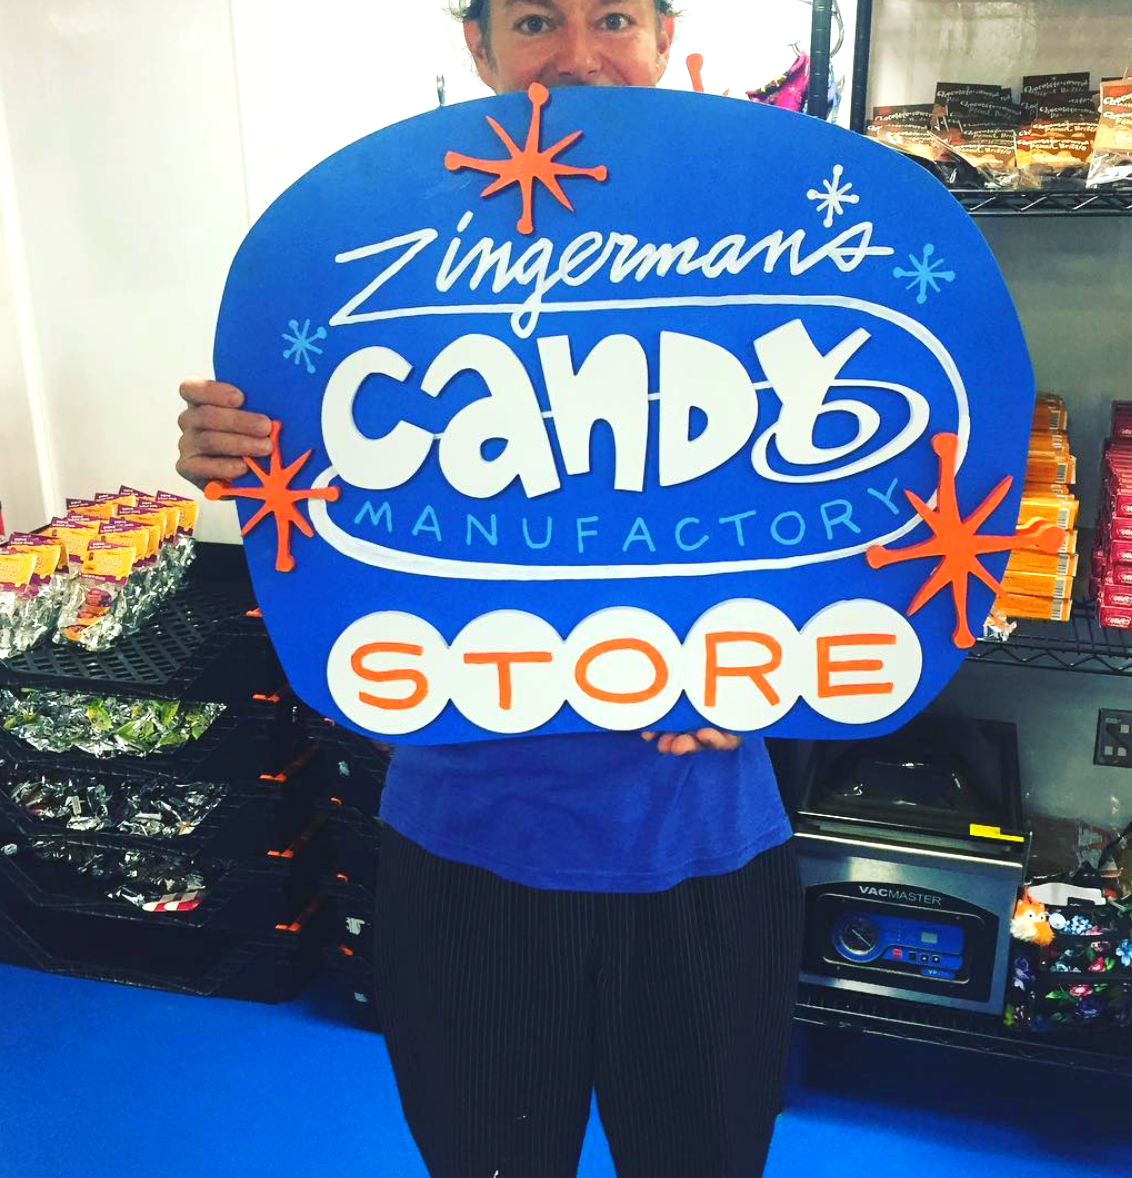 Charlie Frank holding up the sign for the Zingerman's Candy Manufactory Store.